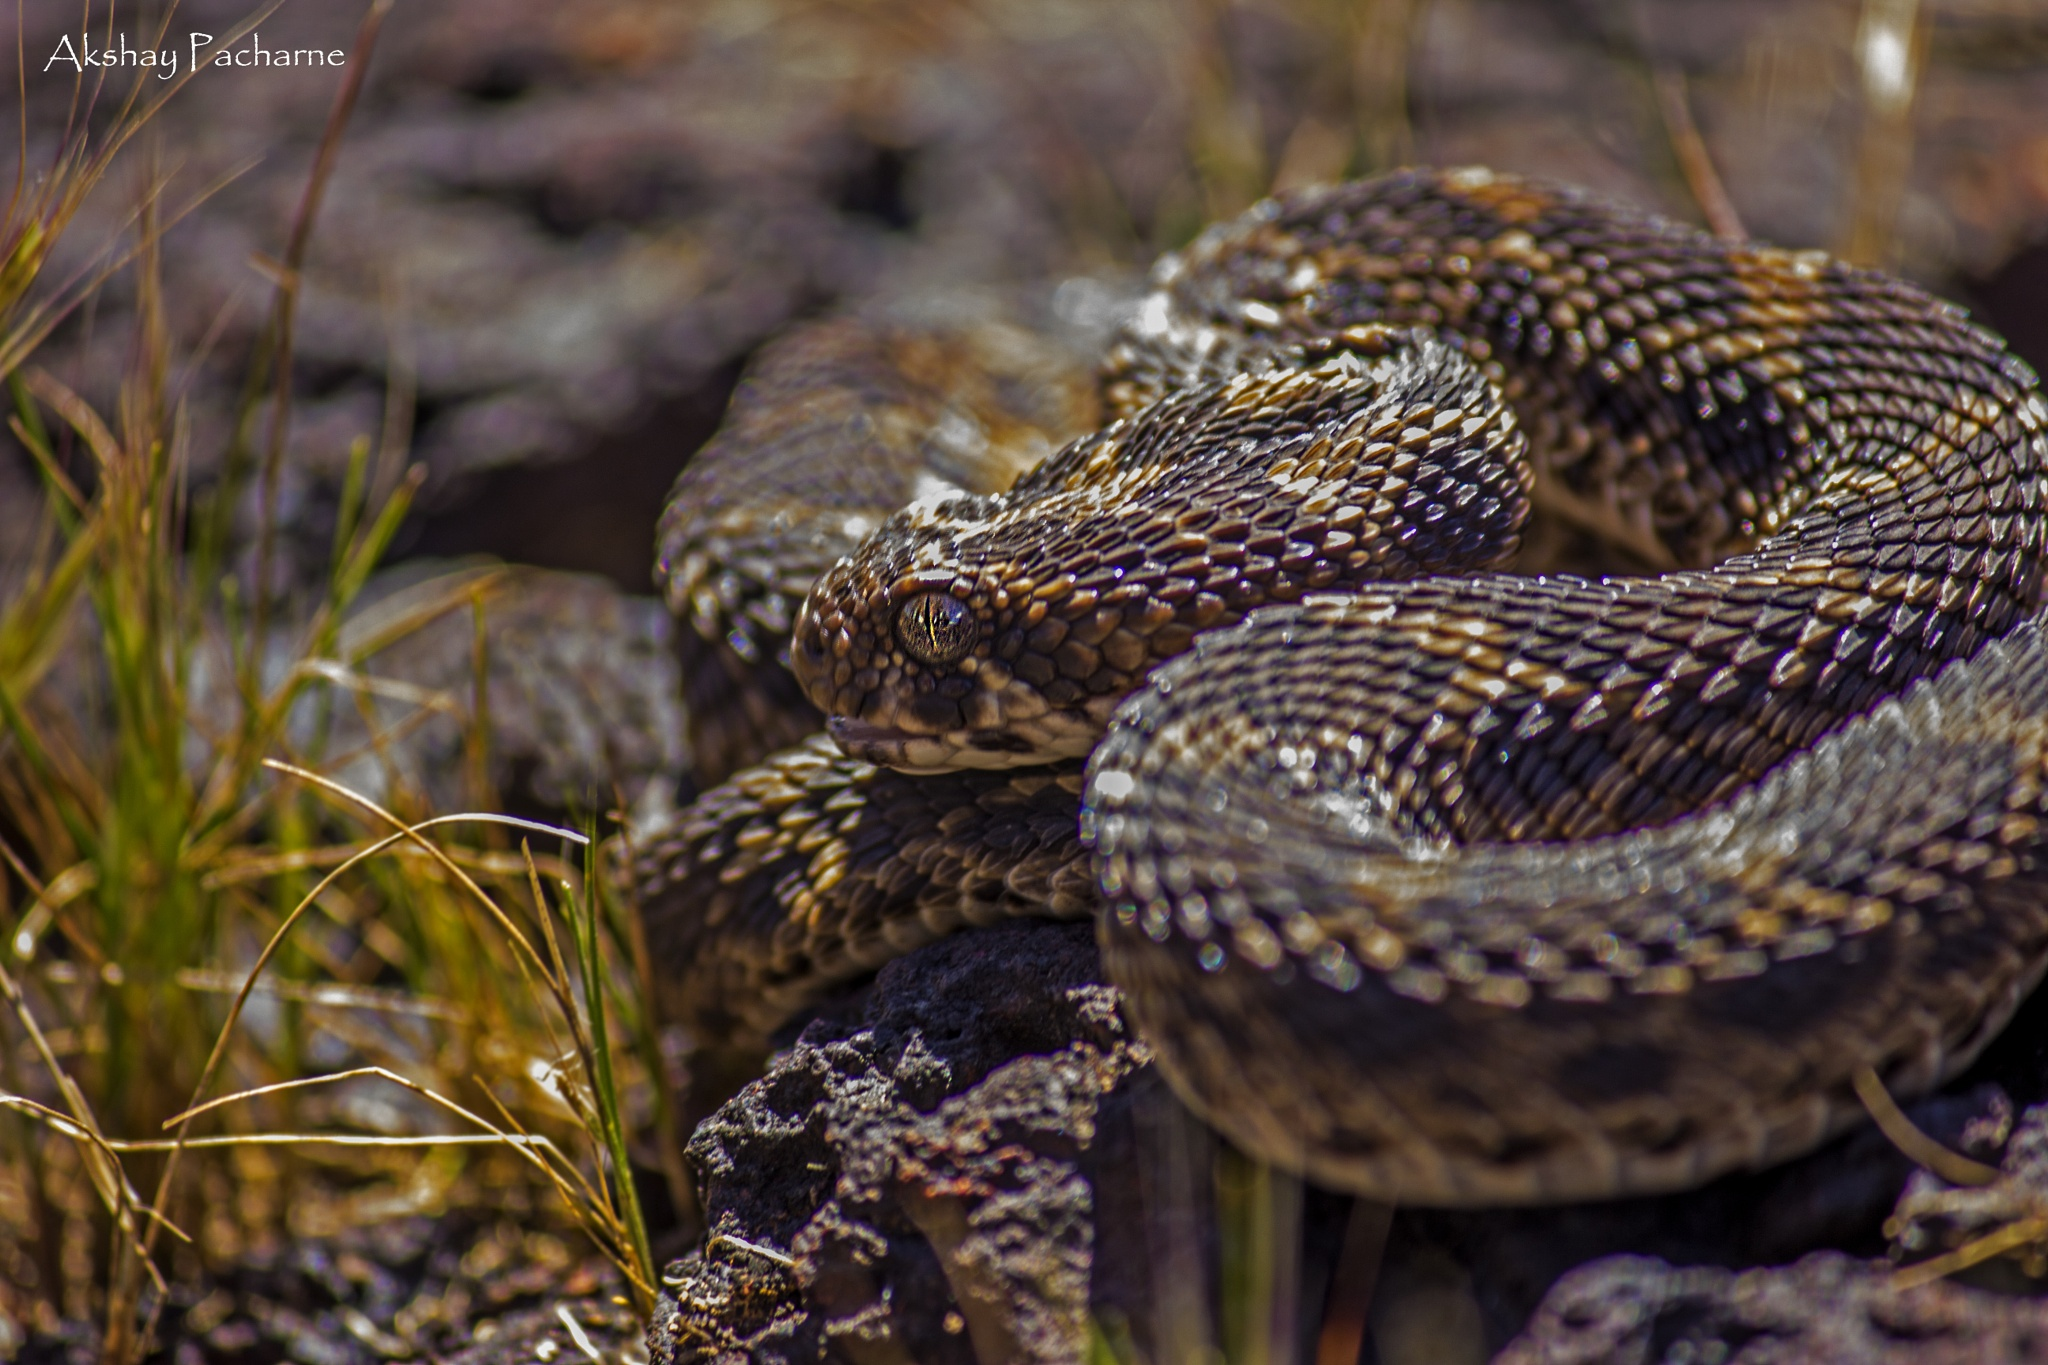 The Lateritic Scales - The Saw-scaled Viper!!! by Akshay Pacharne